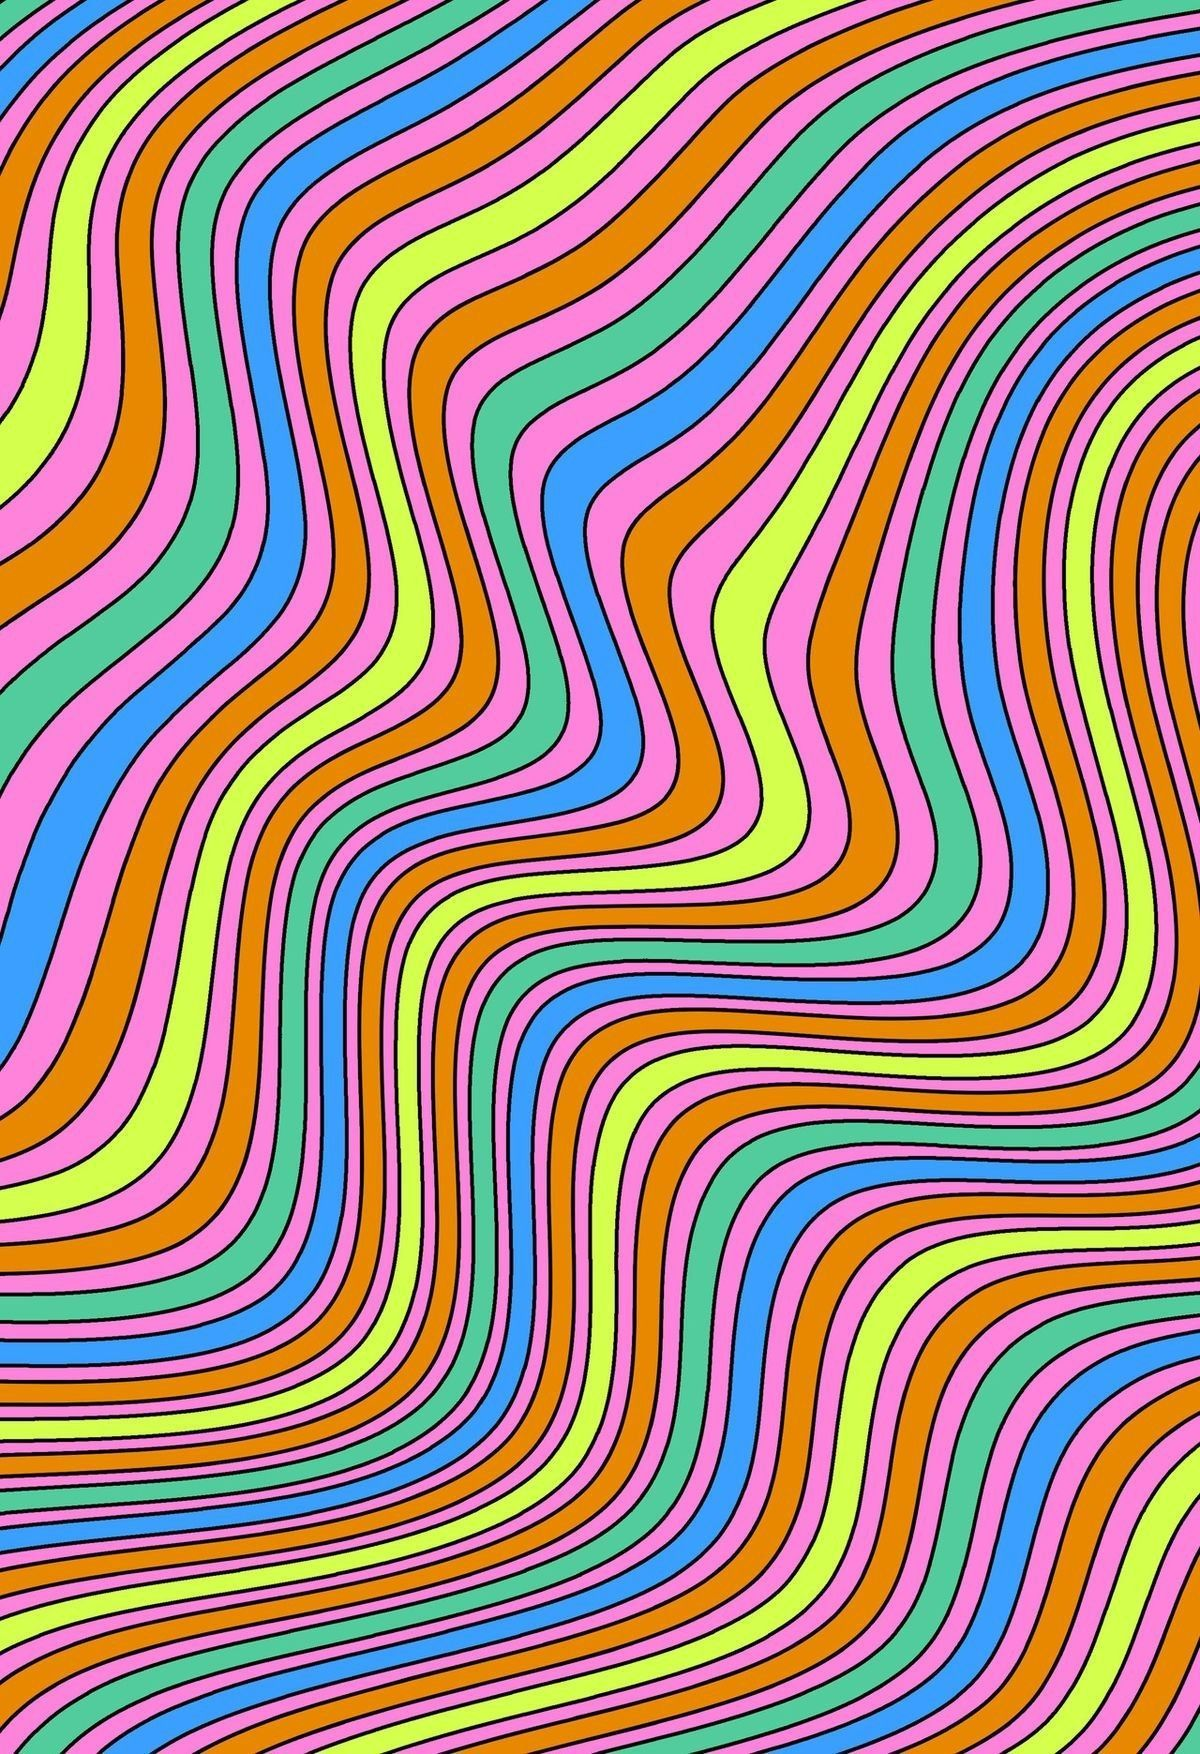 image Trippy wallpaper, Iphone background wallpaper